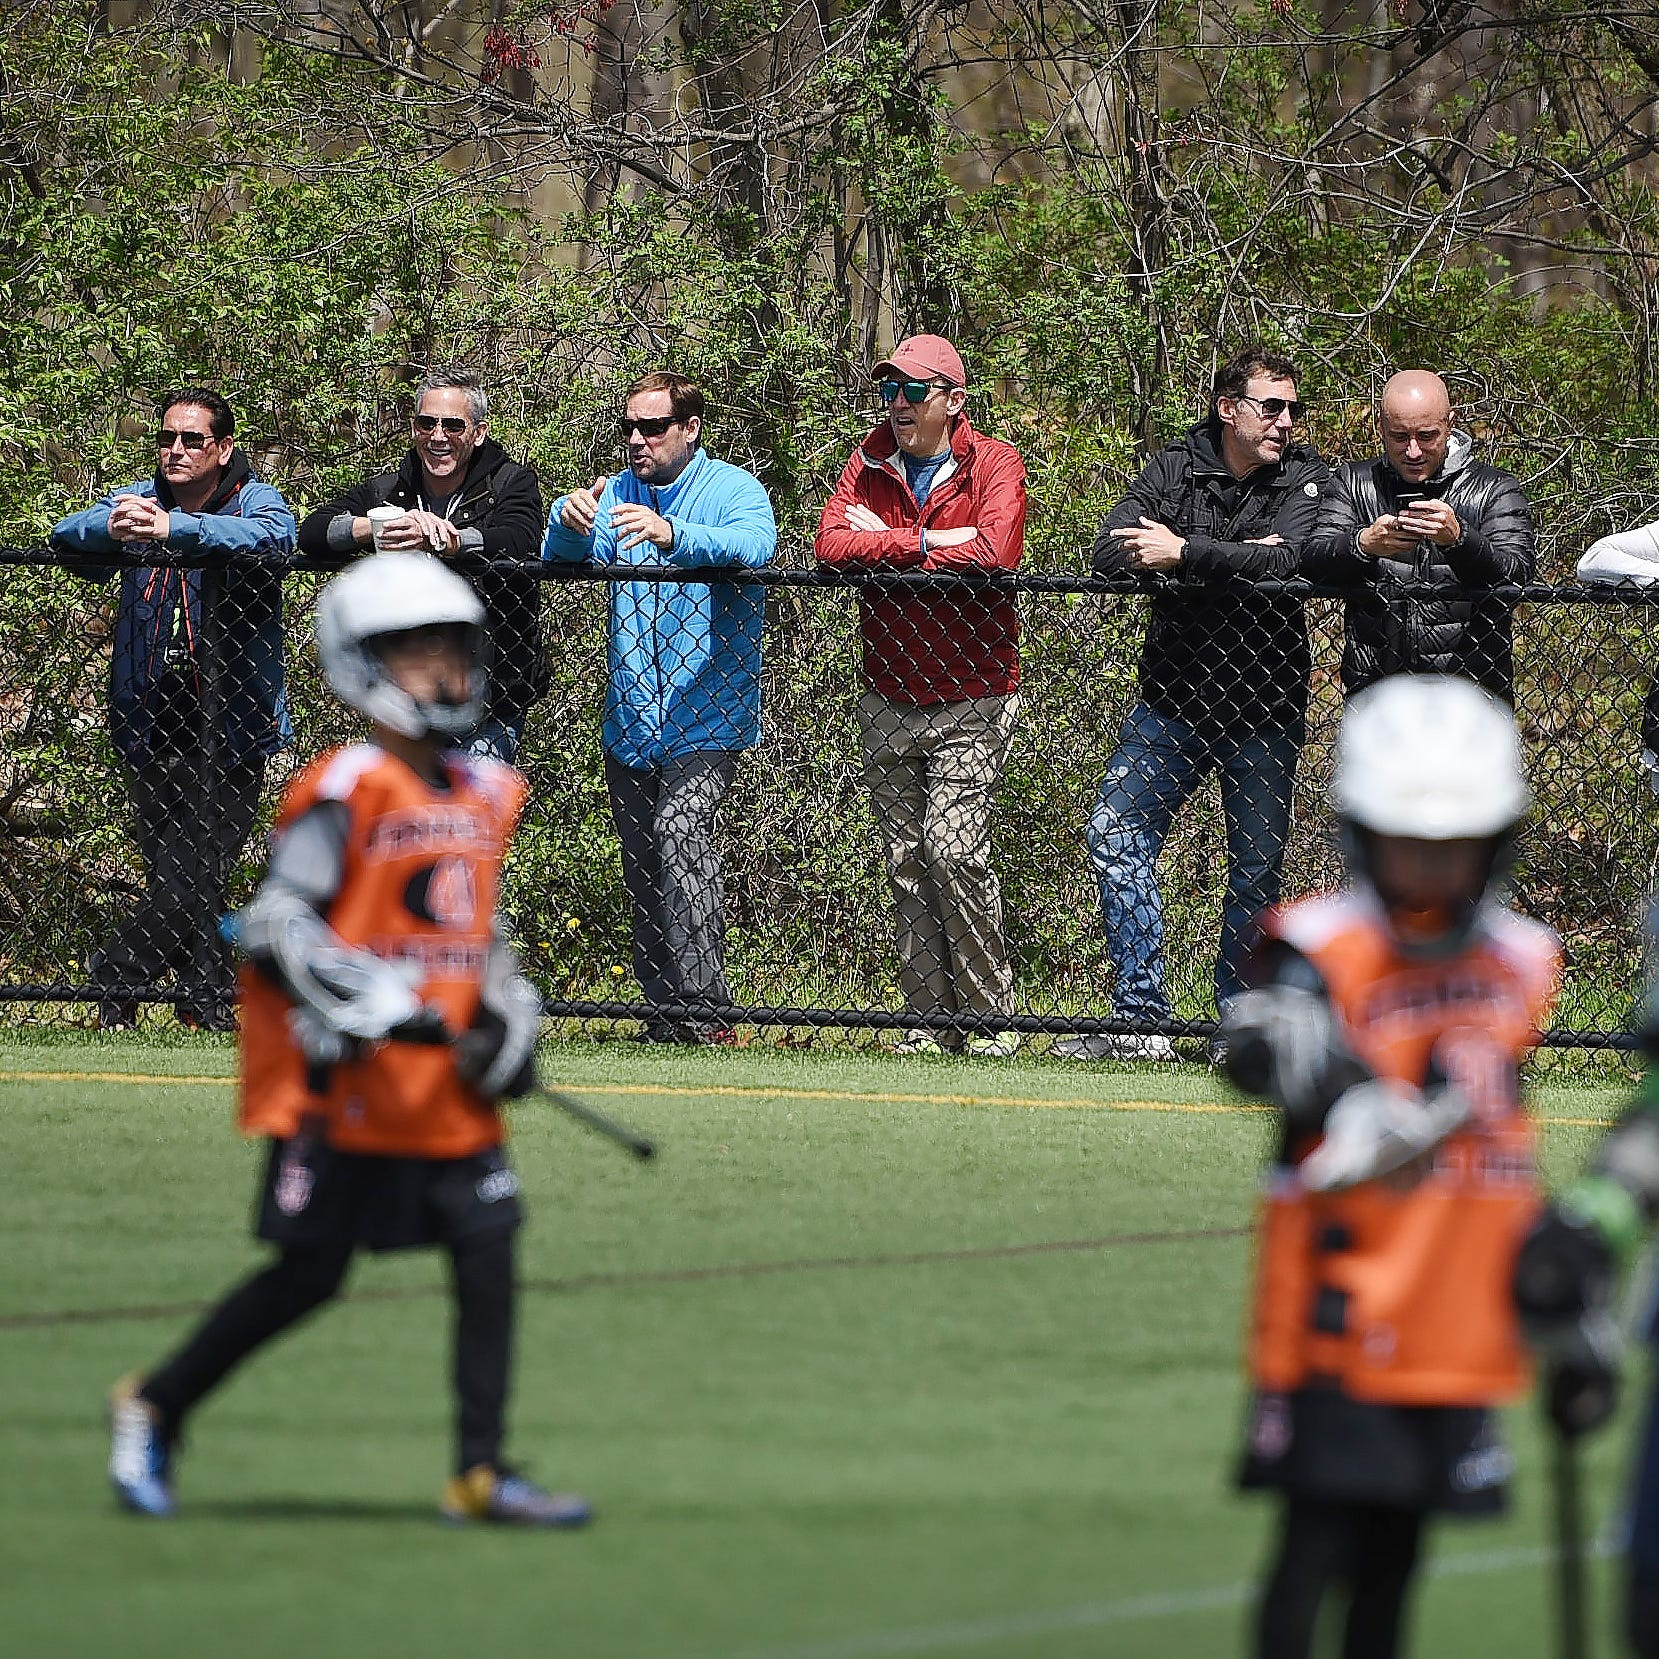 Parents of the players watch during the 6th Annual Ted Hughes Memorial BattleLax Tournament in 2018.